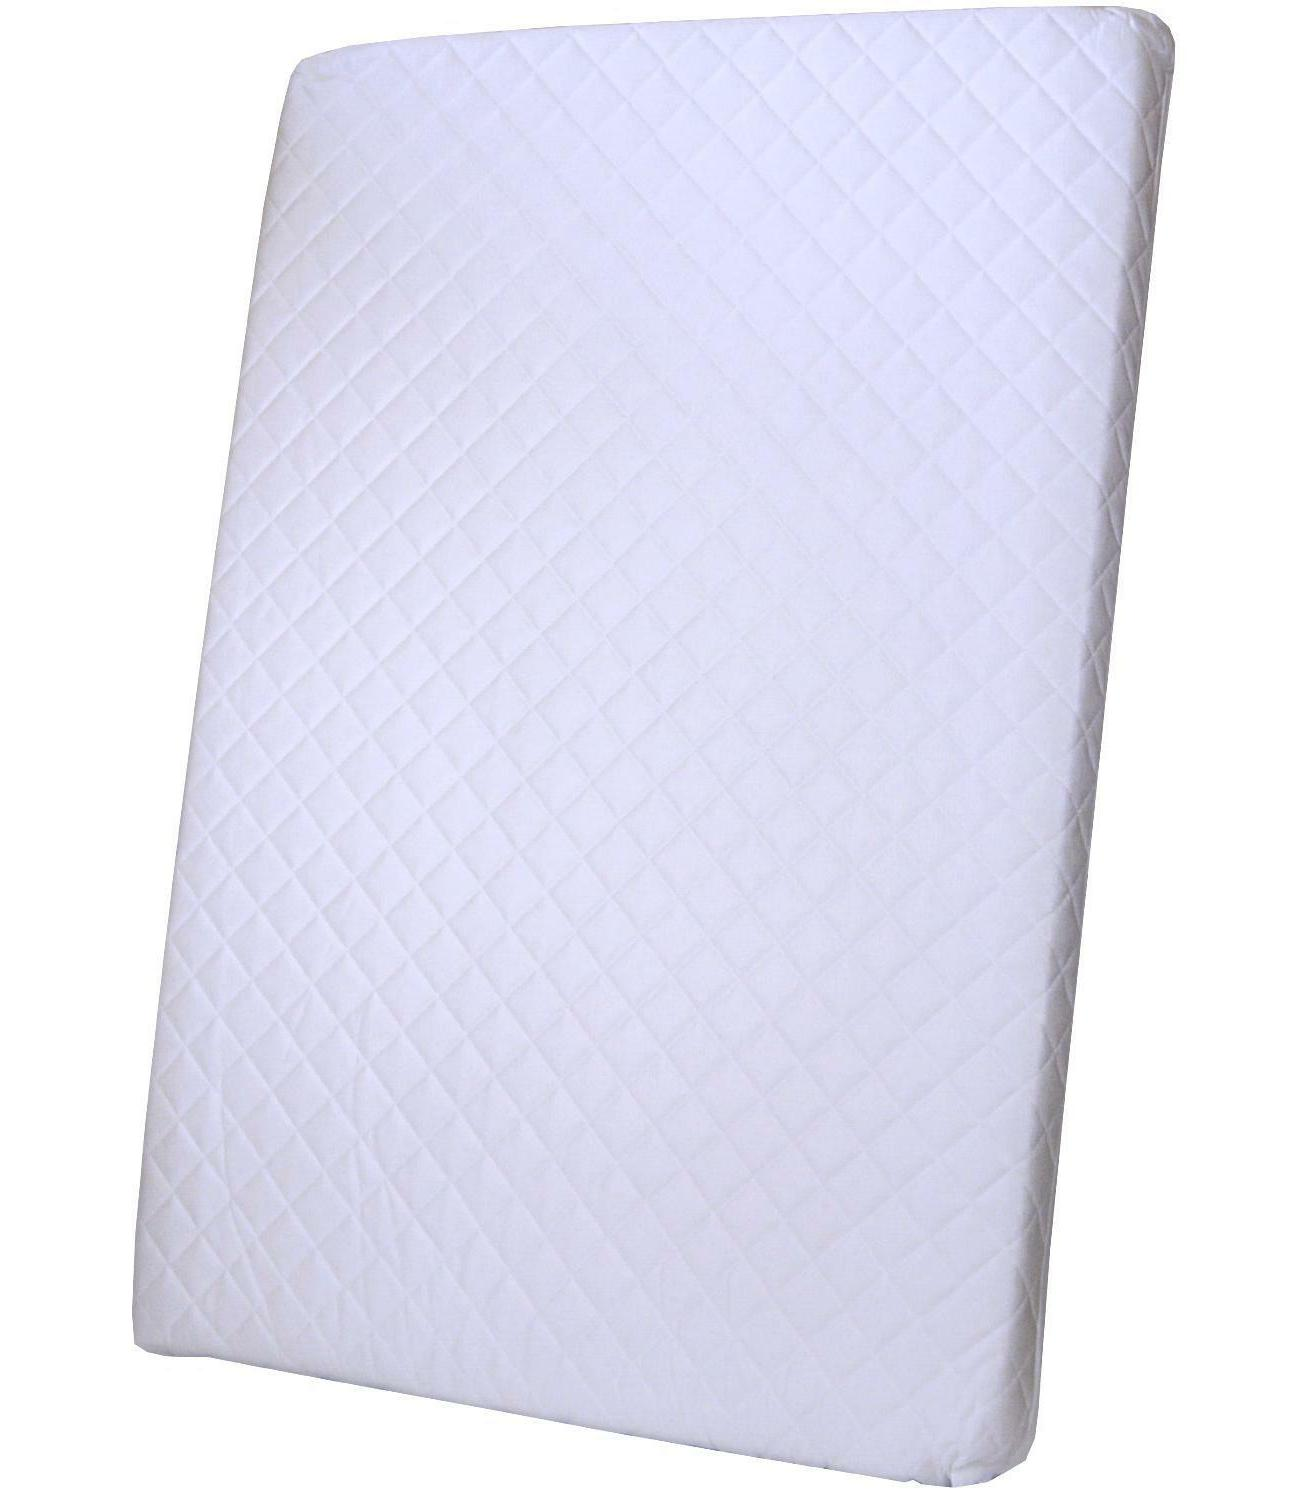 95 x 65 Breathable Cover